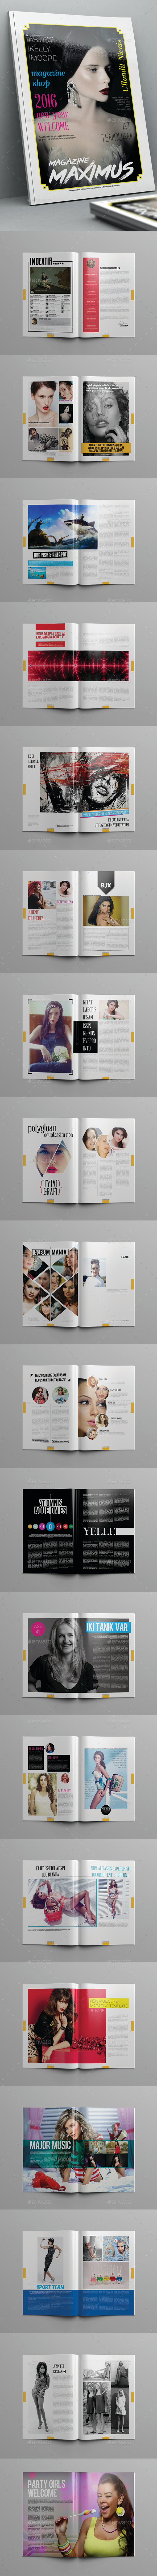 Maximus Magazine Template 40 Pages - Magazines Print Templates